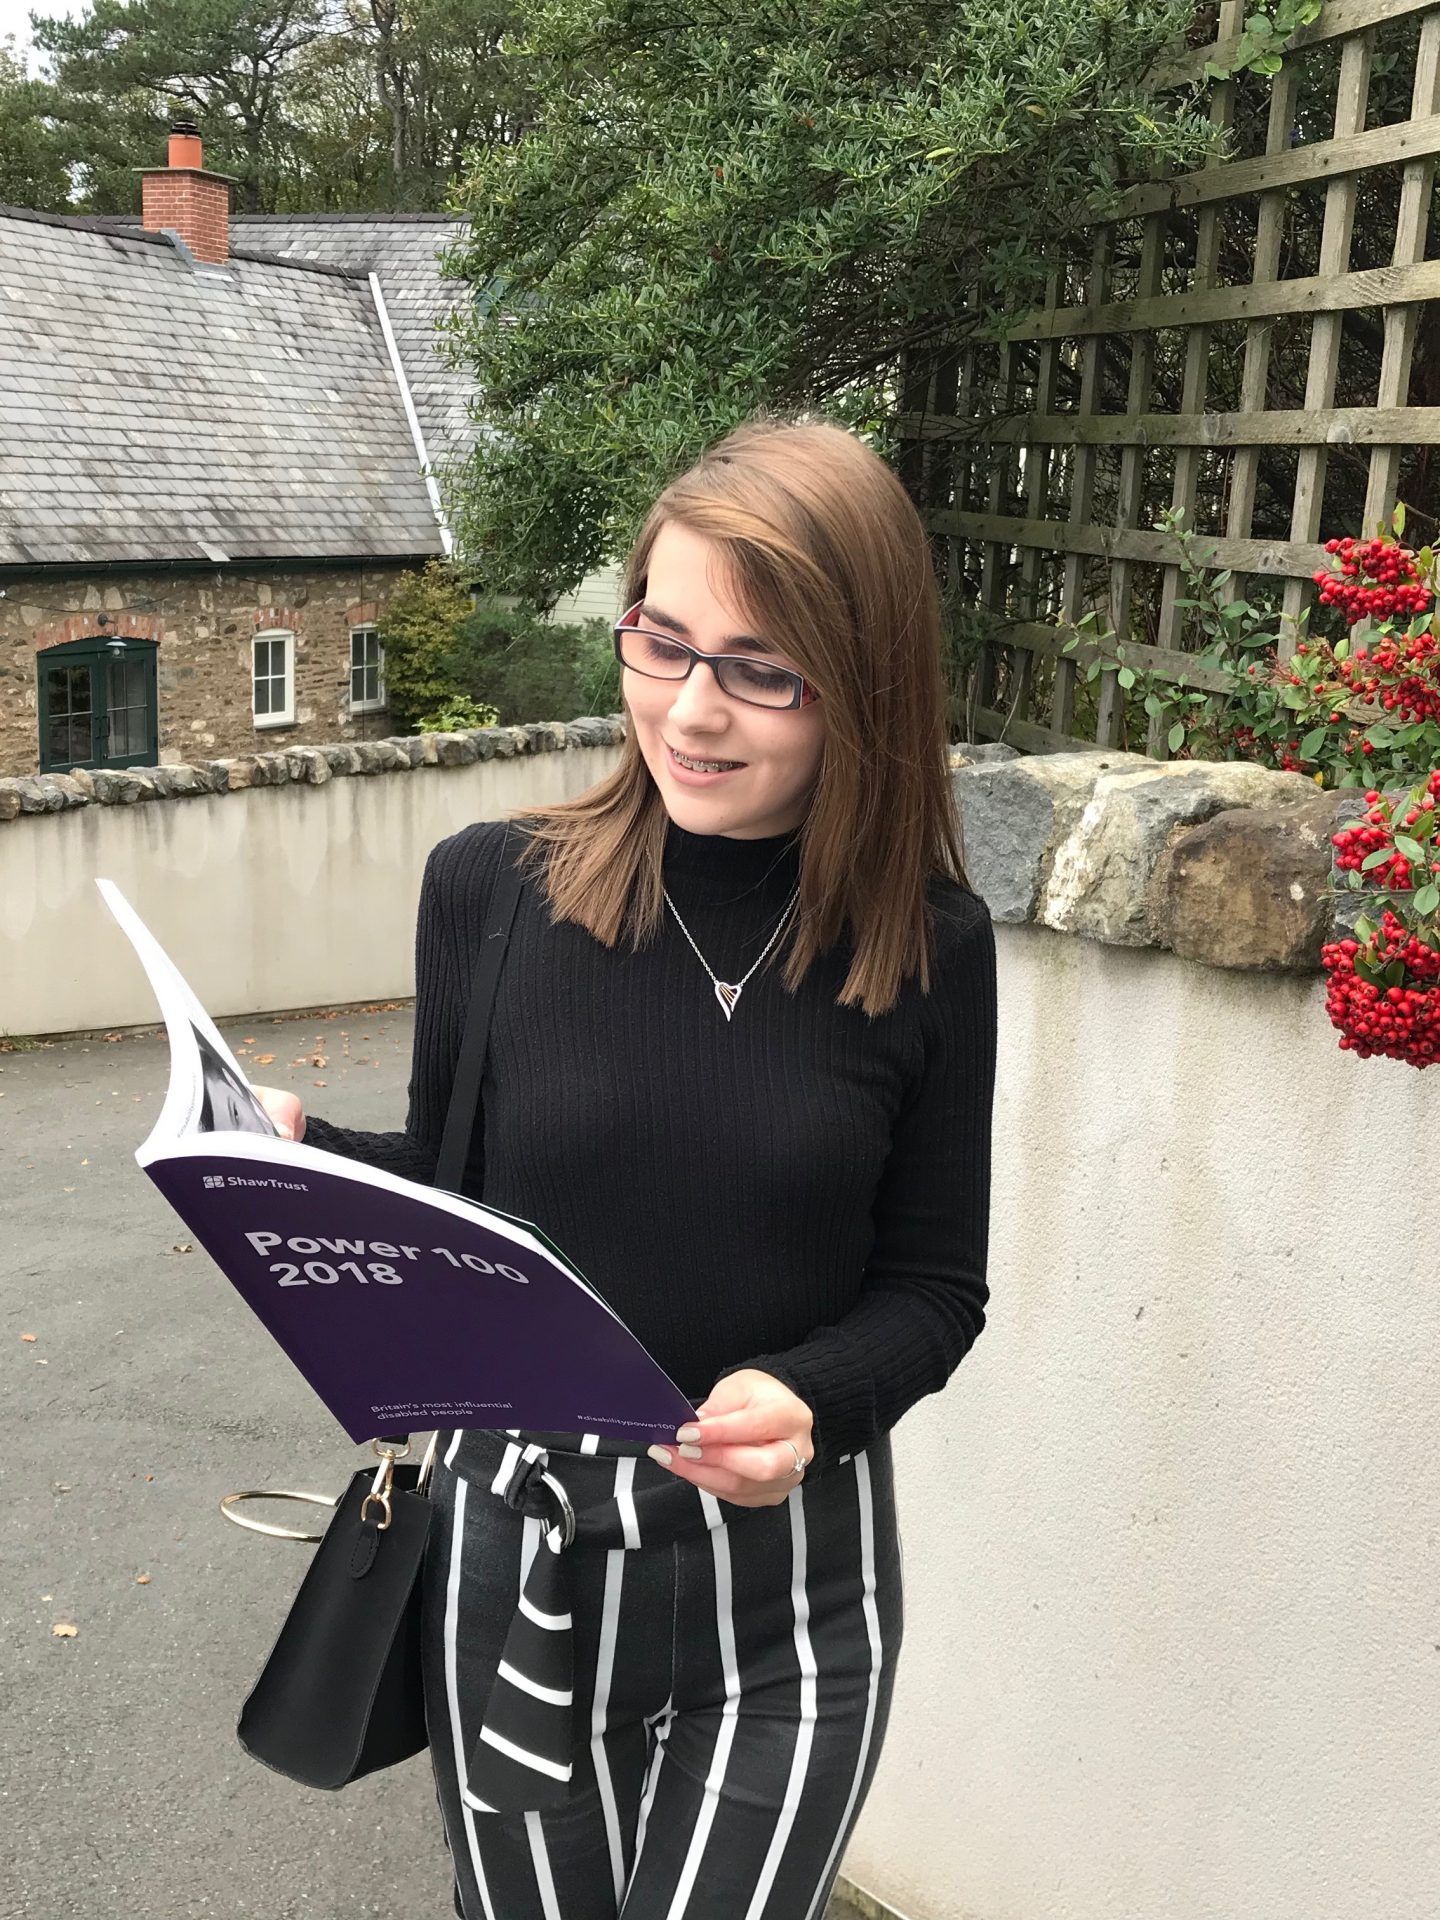 A photo of Elin holding the power list as if she's reading it